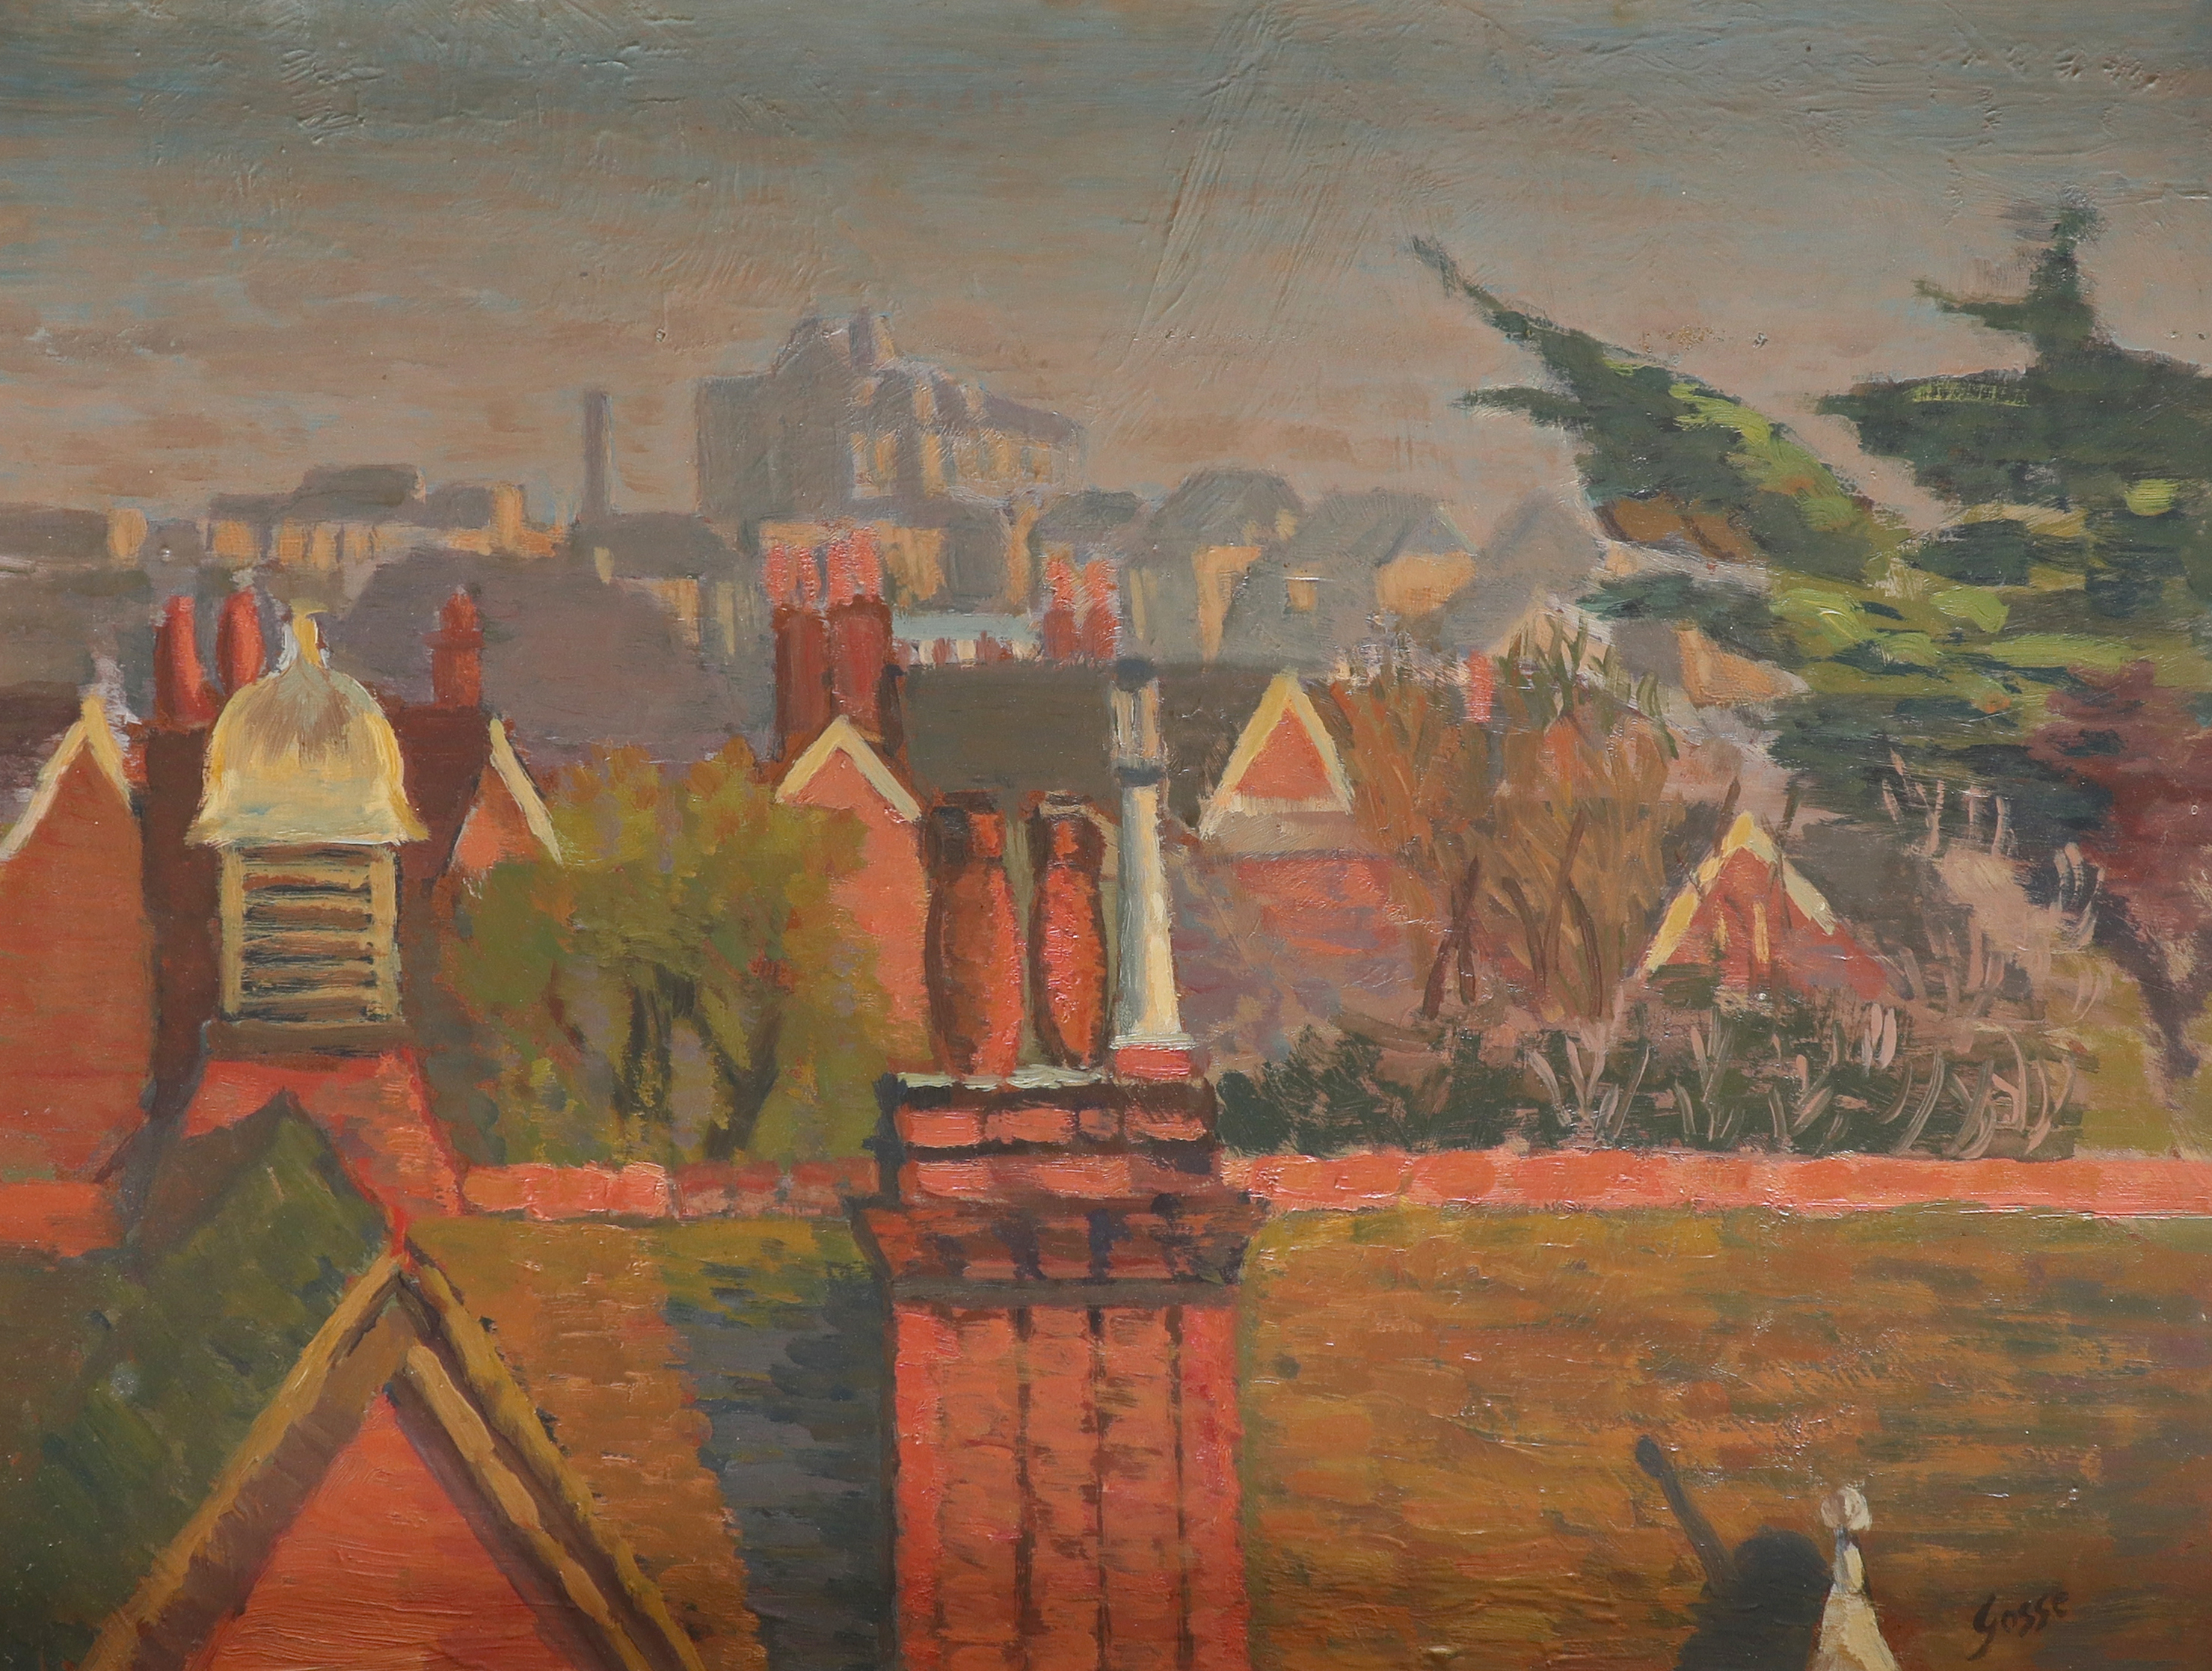 ‡Sylvia Gosse (1881-1968) Over the rooftops Signed Gosse (lower right) Oil on board 45.8 x 60.9cm